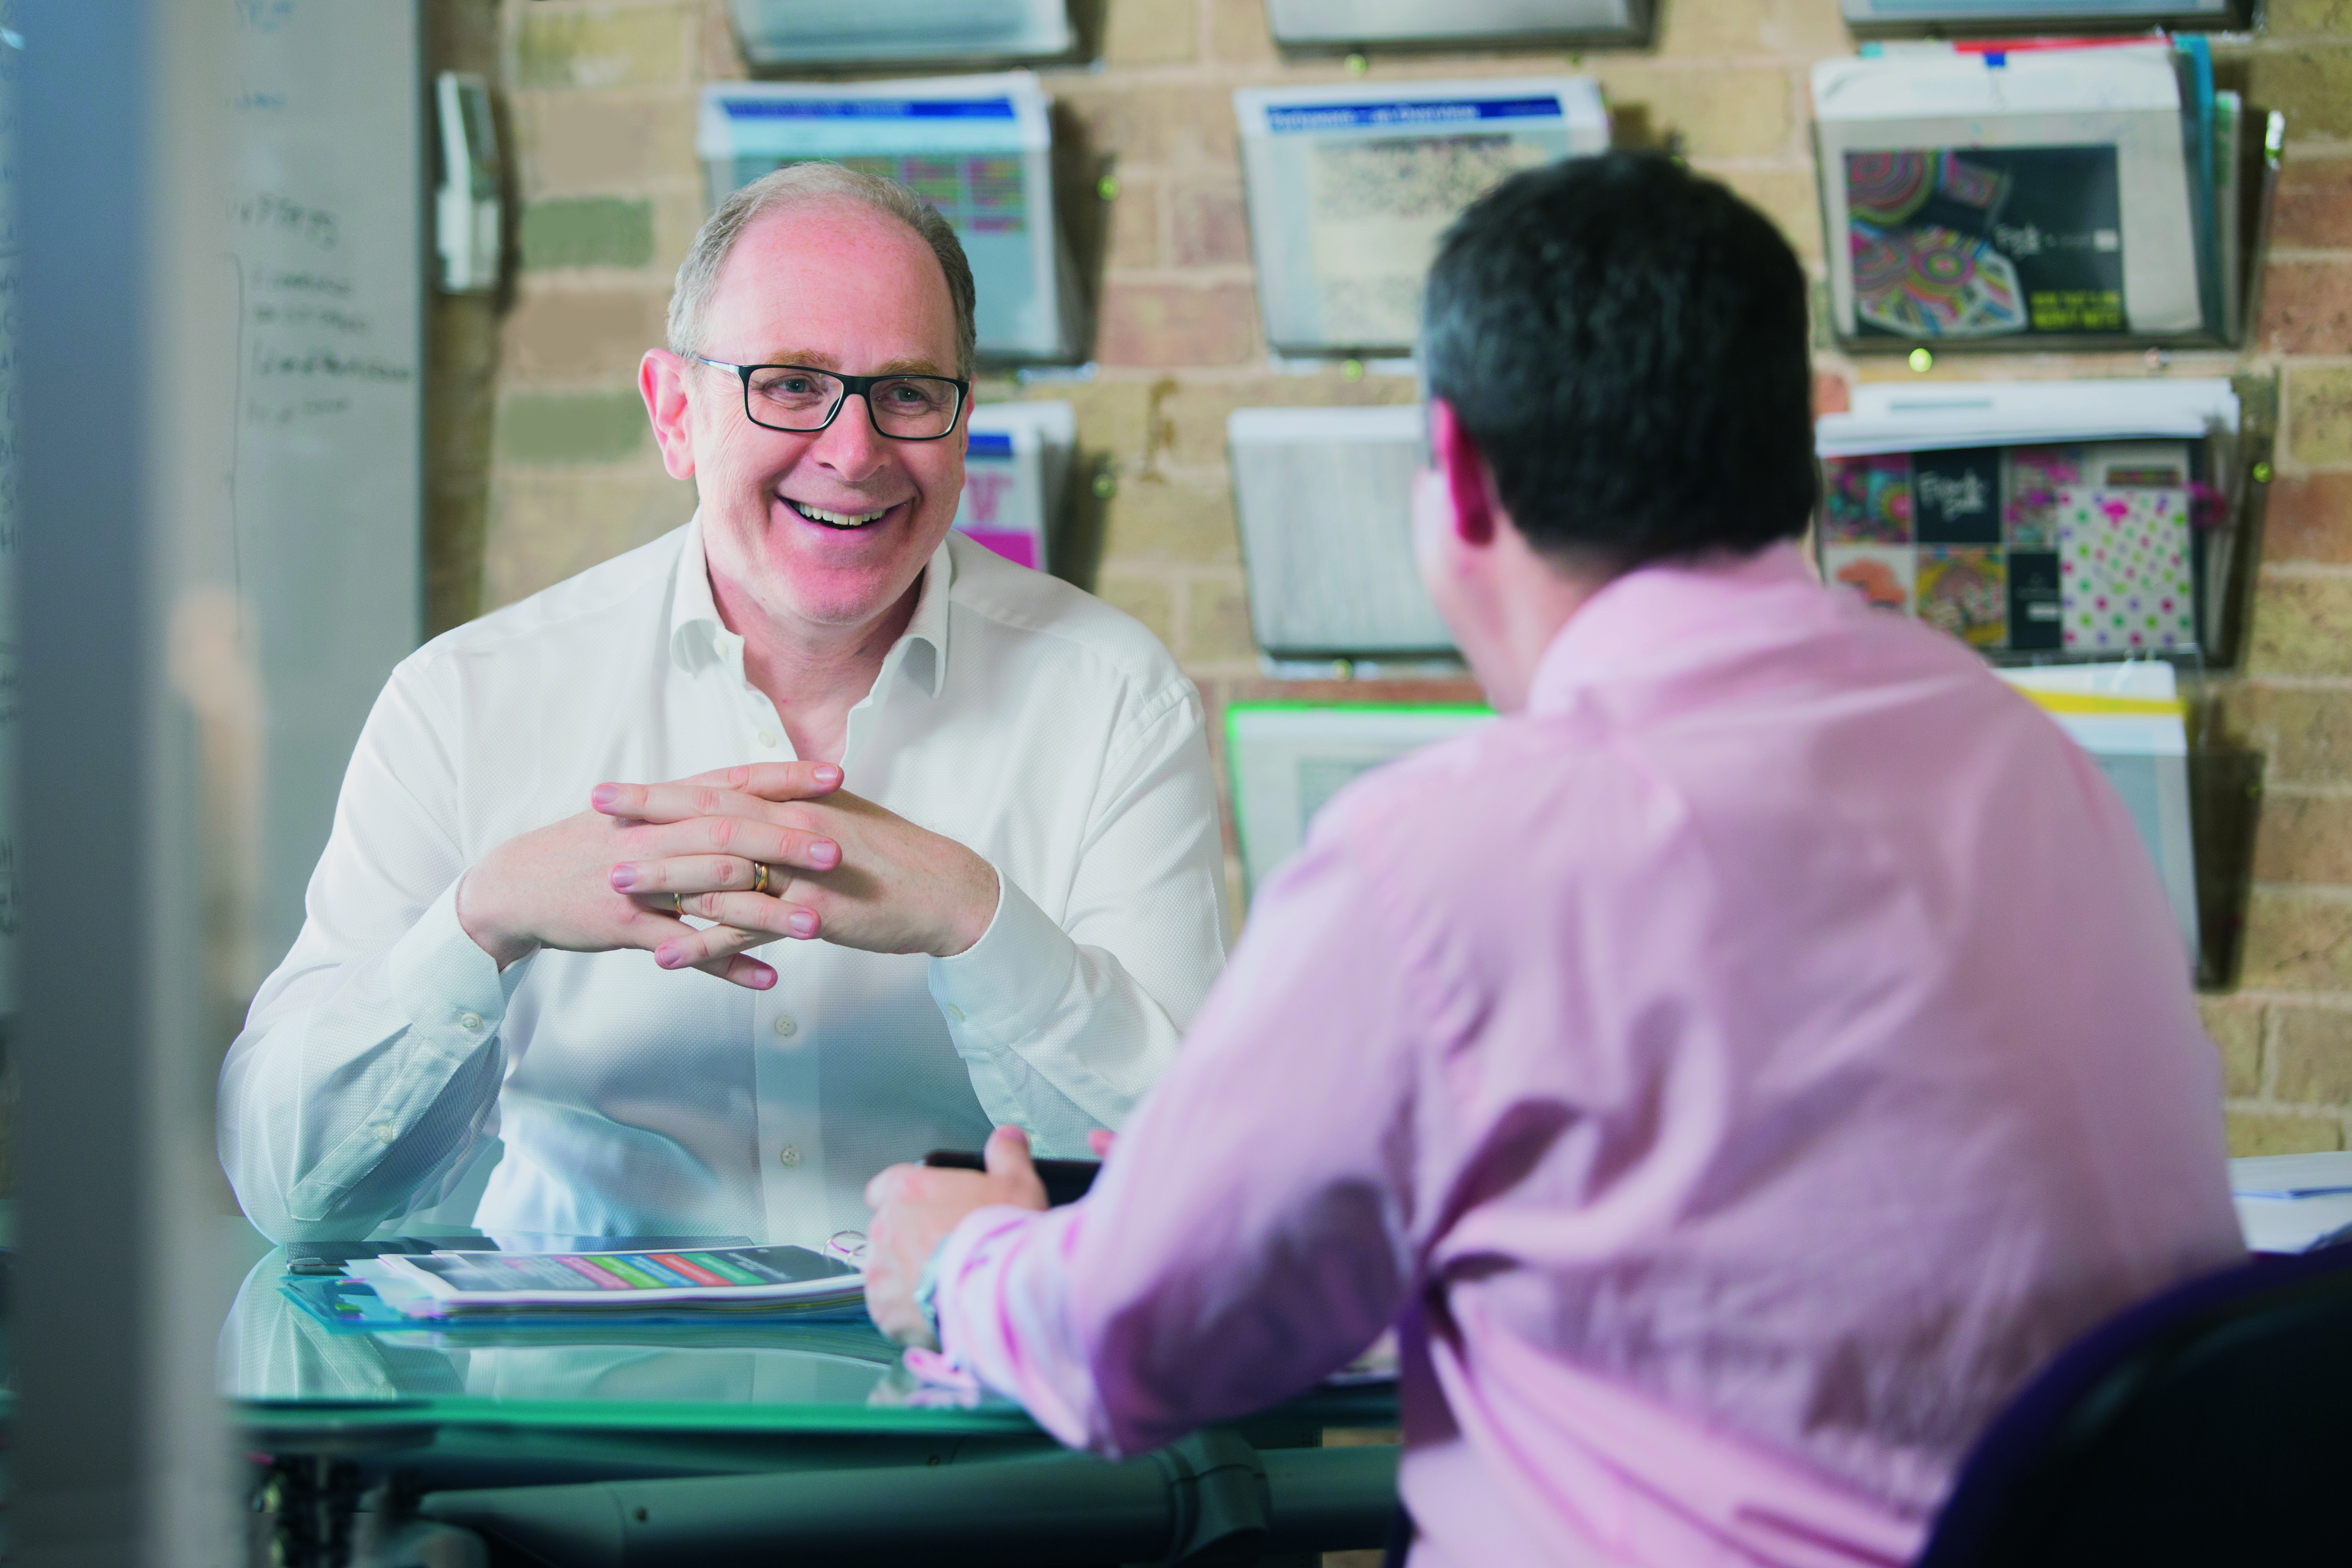 Above: Paul Fineman, the group's ceo is fairly optimistic of growth opportunities.